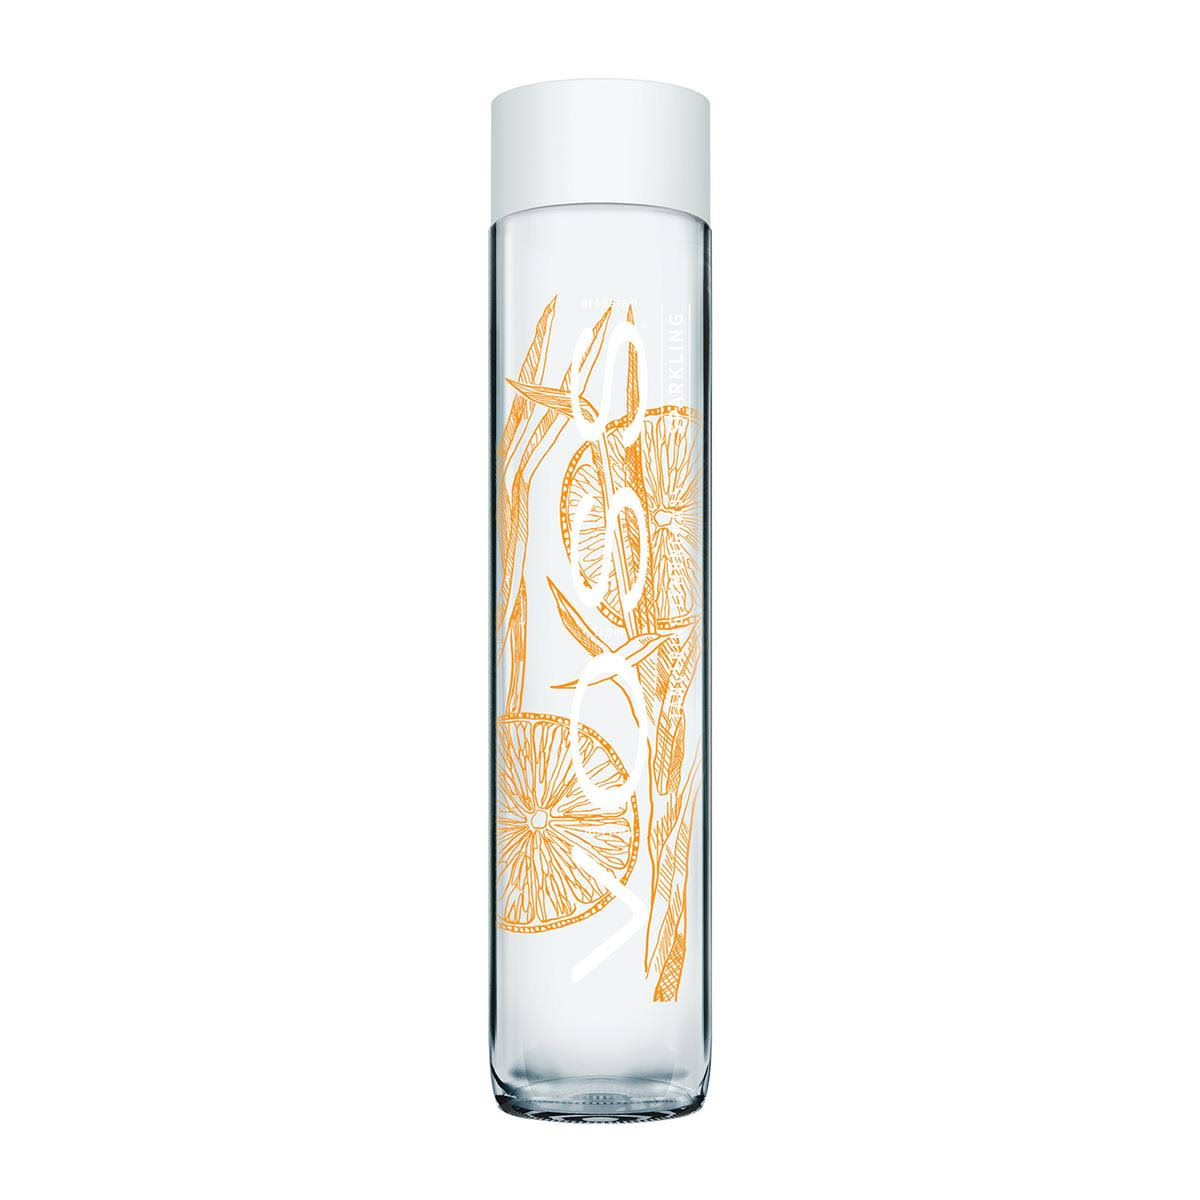 Voss Sparkling Water - Tangerine Lemongrass, 375ml